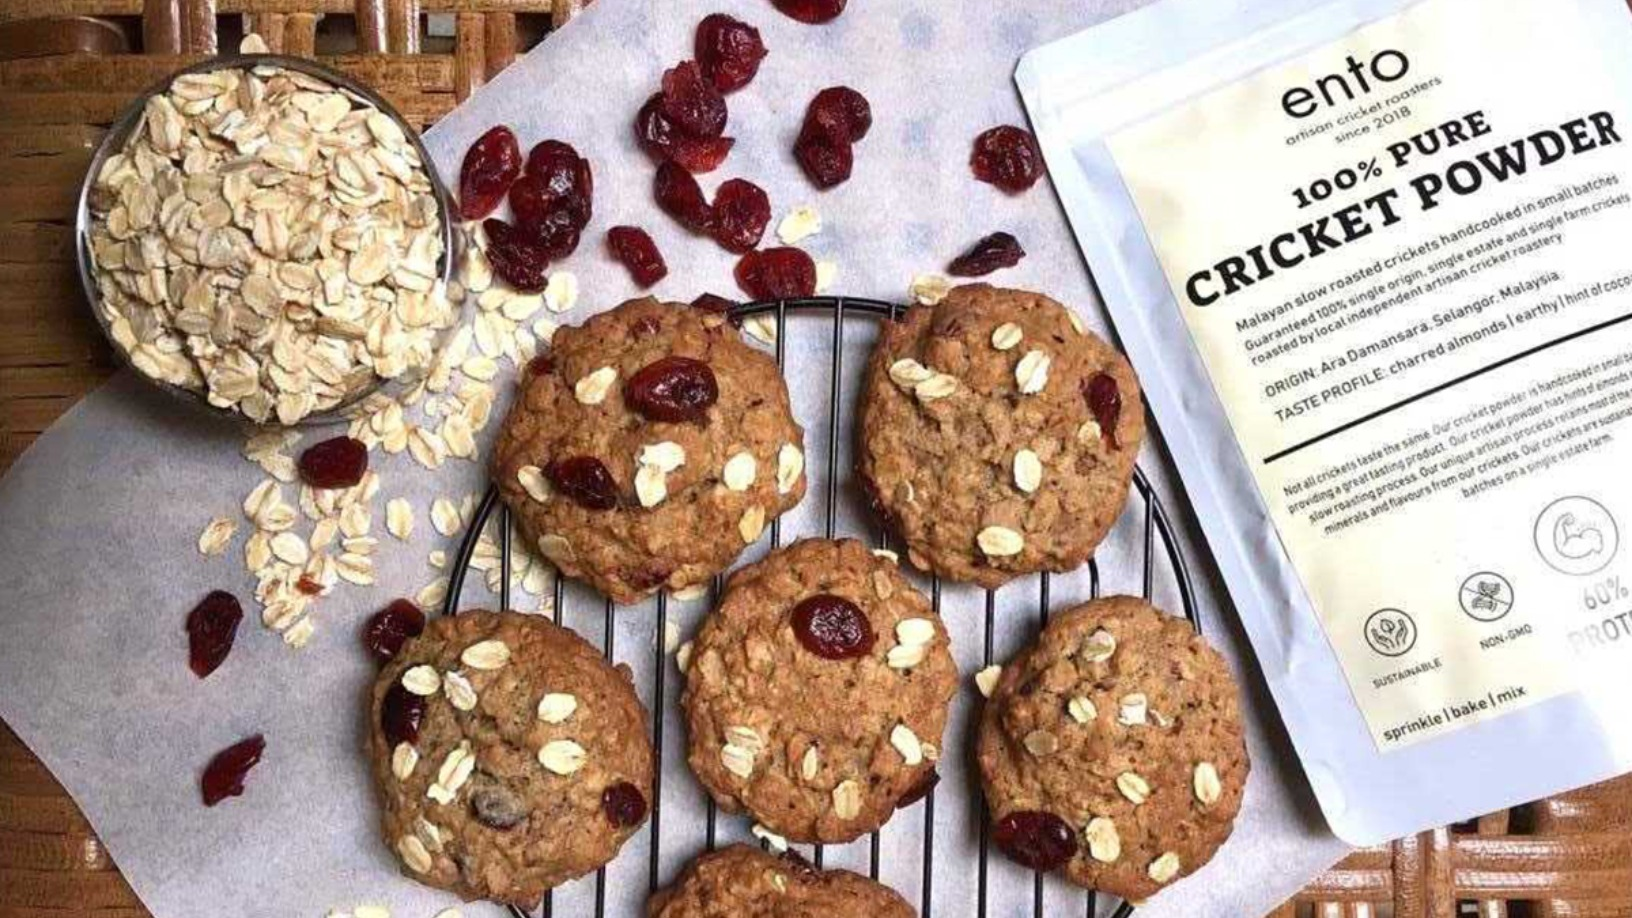 Ento: Making cookies and burger patties from crickets